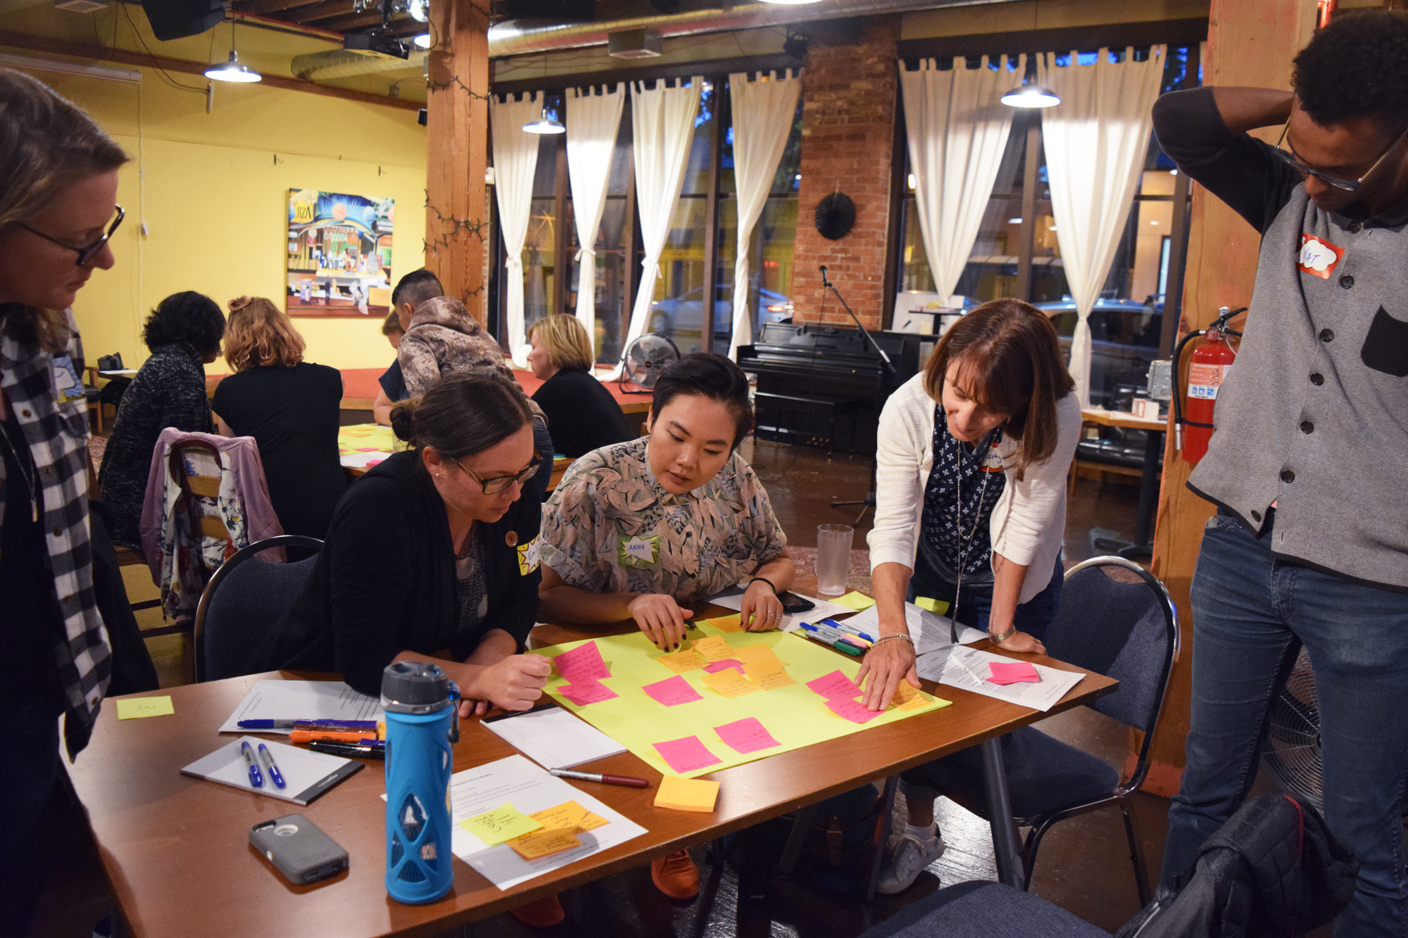 Participants around a table work together on a collaborative sticky-note exercise